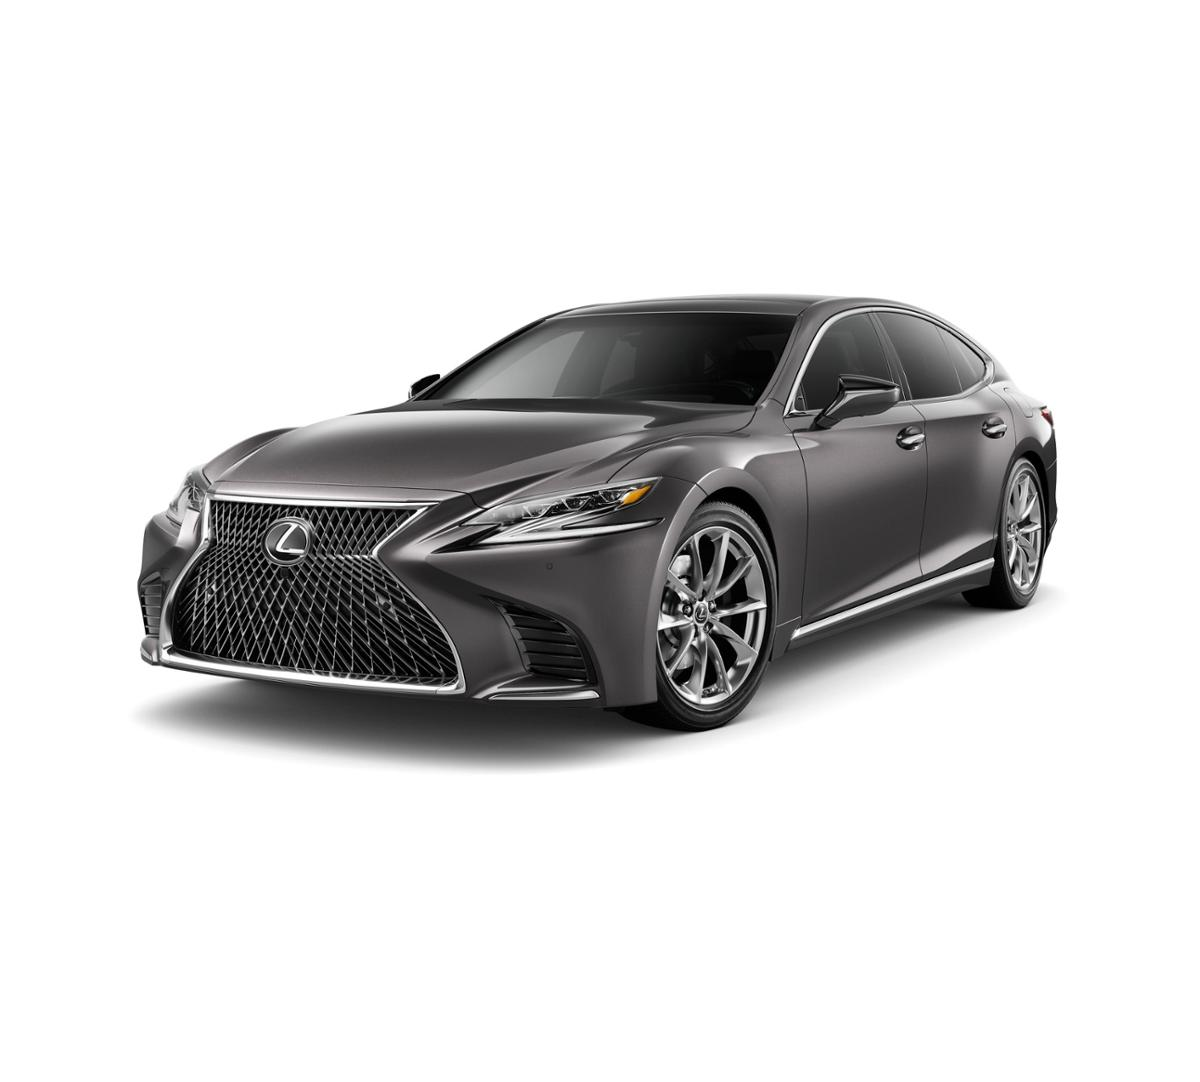 columbia manganese luster manganese 2018 lexus ls 500 new car for sale 27089. Black Bedroom Furniture Sets. Home Design Ideas